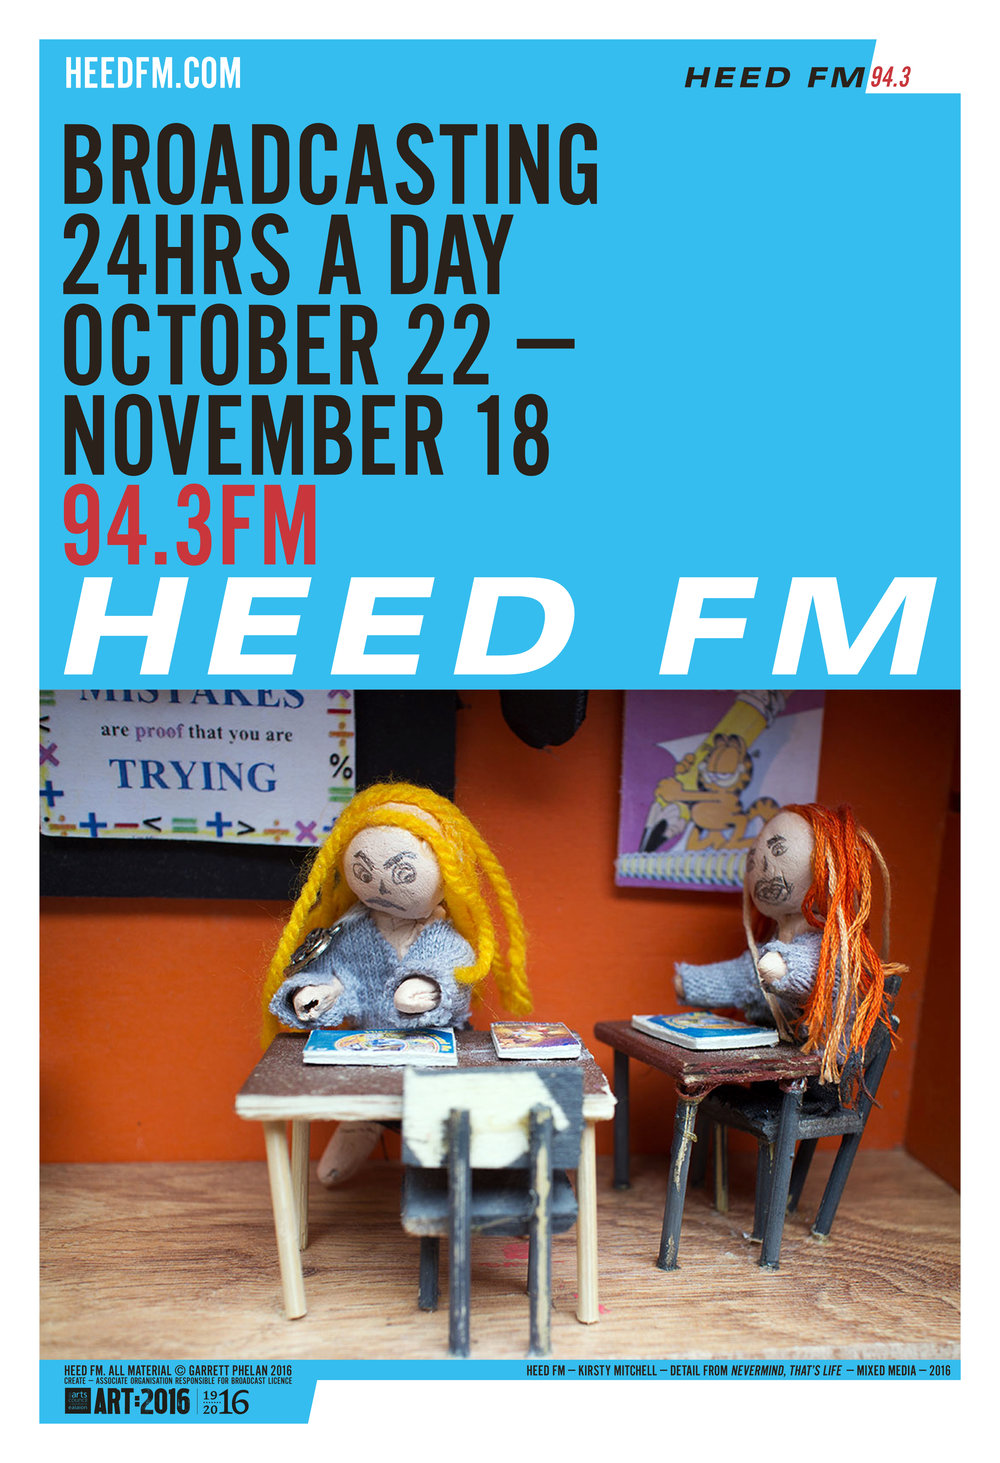 heed fm 4 sheets artwork-4.jpg